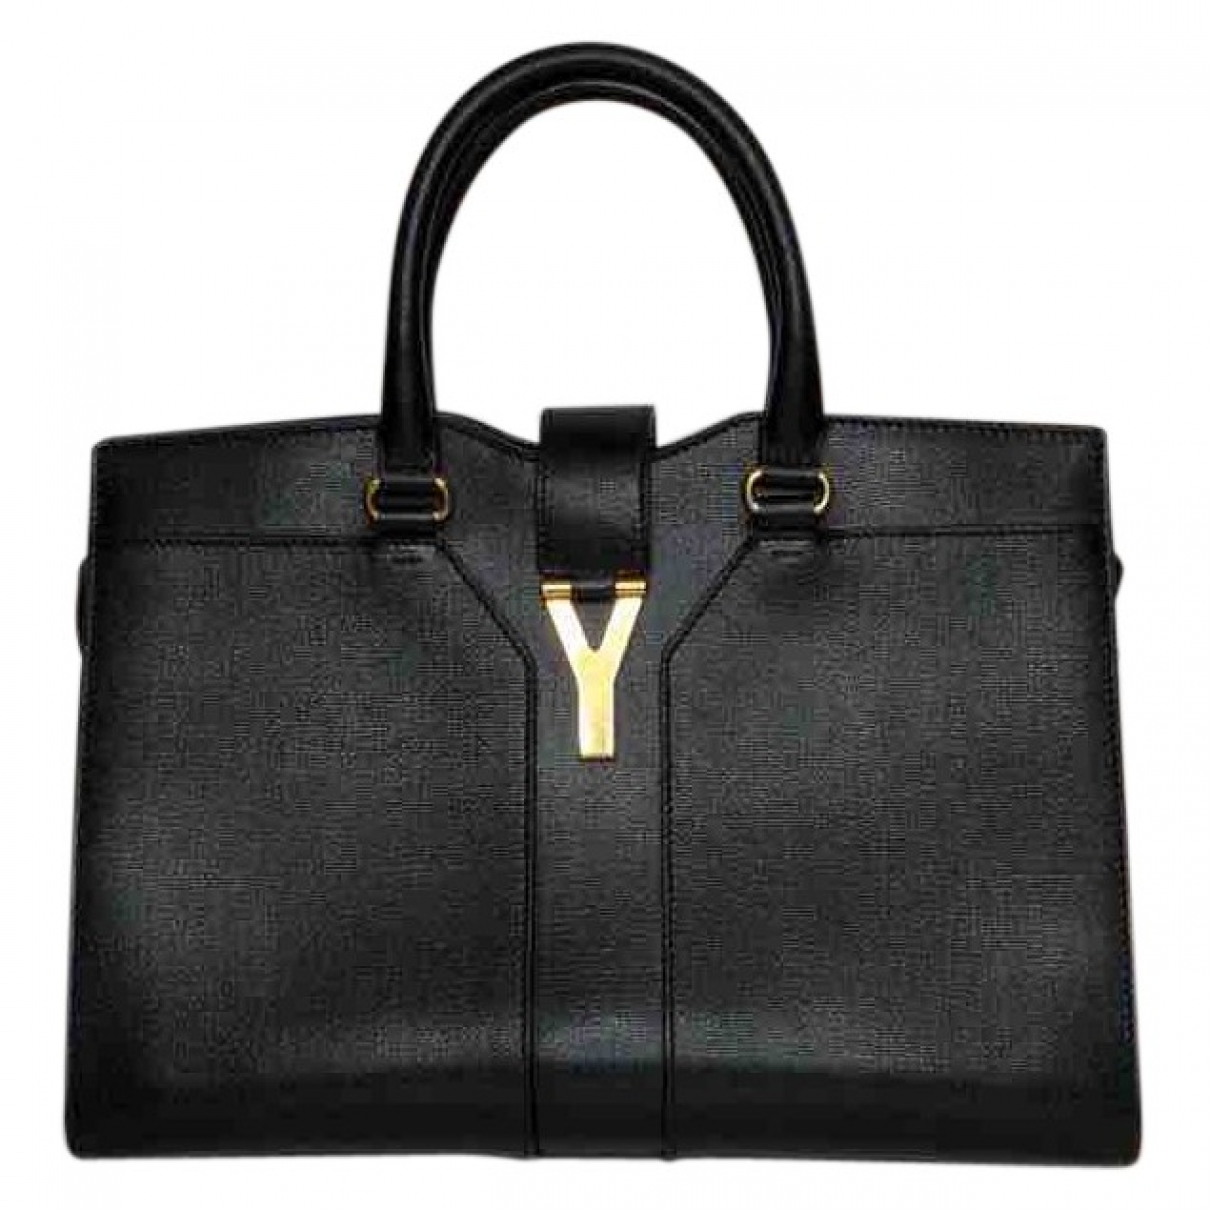 Yves Saint Laurent Chyc Black Leather handbag for Women \N